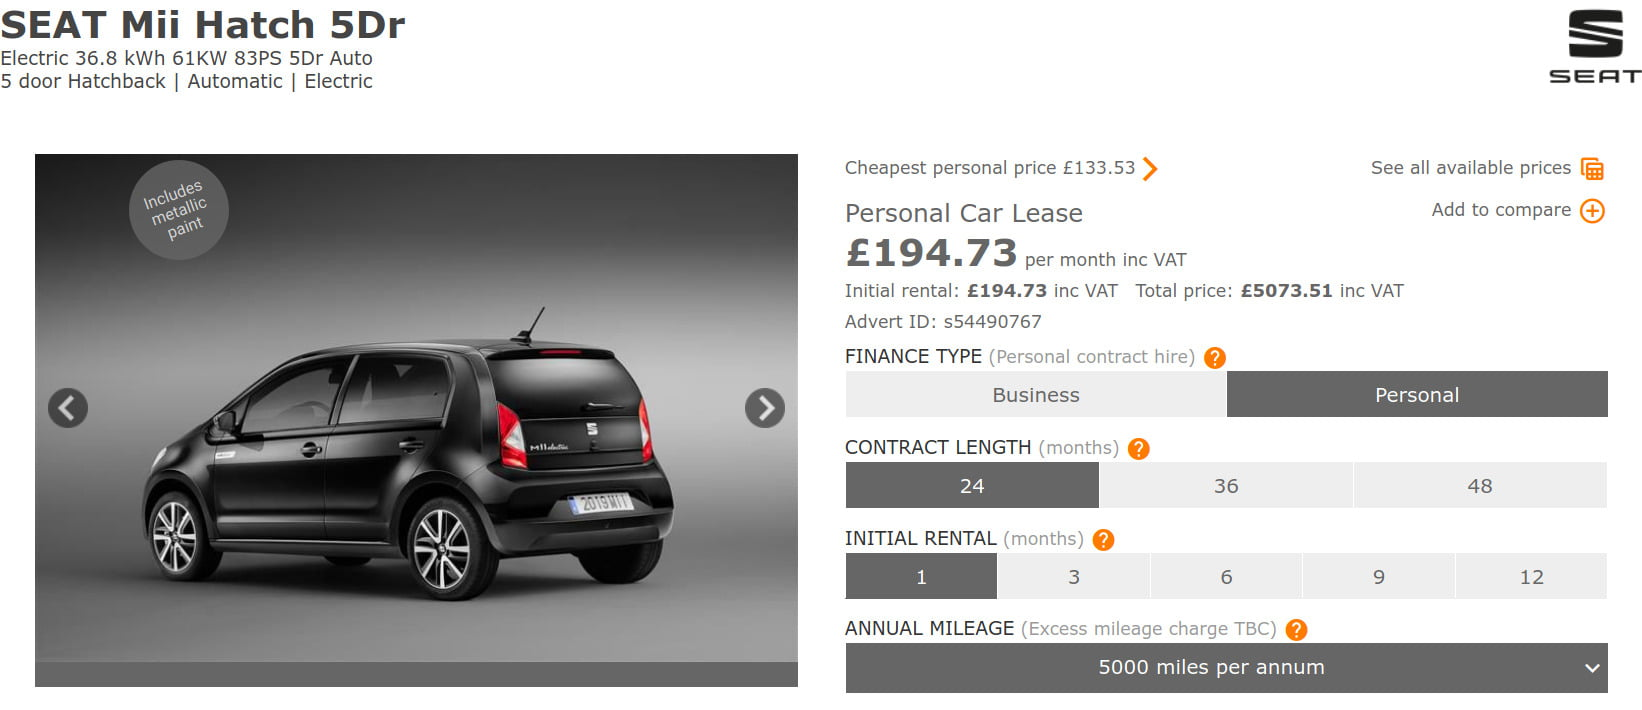 Car leasing screen - the car is £194.73 per month inc VAT.